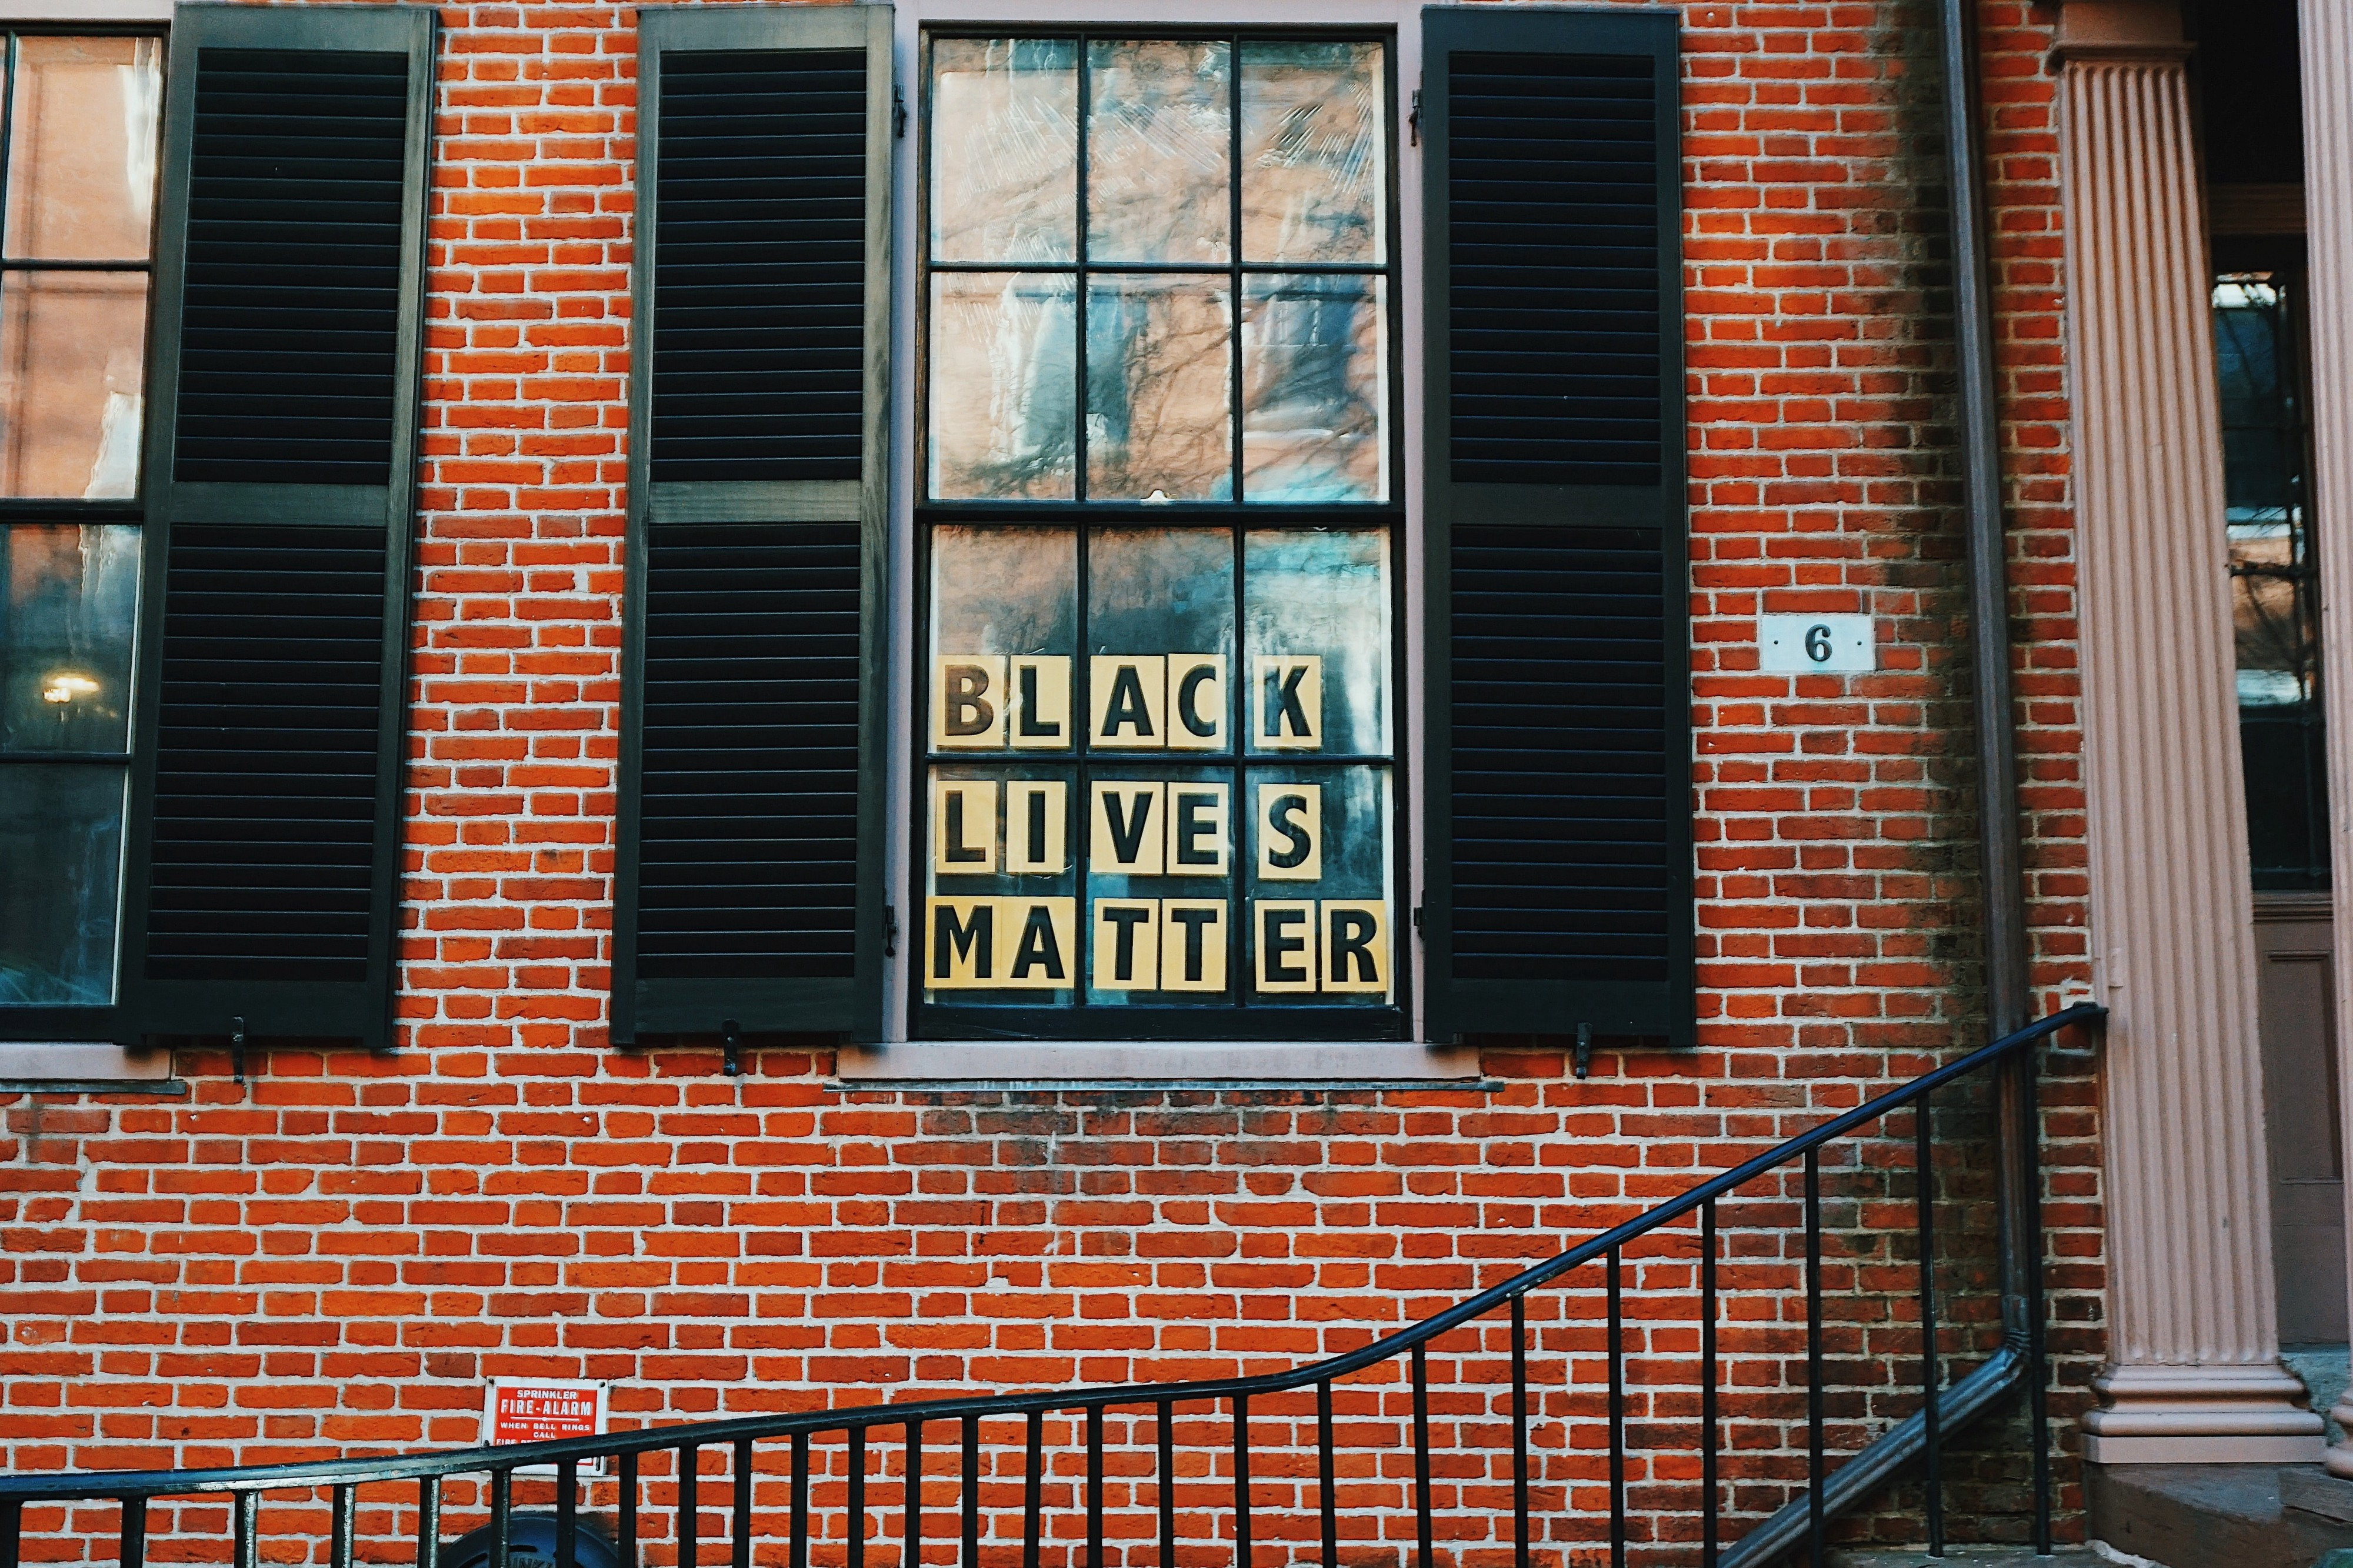 """BLACK LIVES MATTER"" on yellow paper in a window of a red brick building with black open shutters"